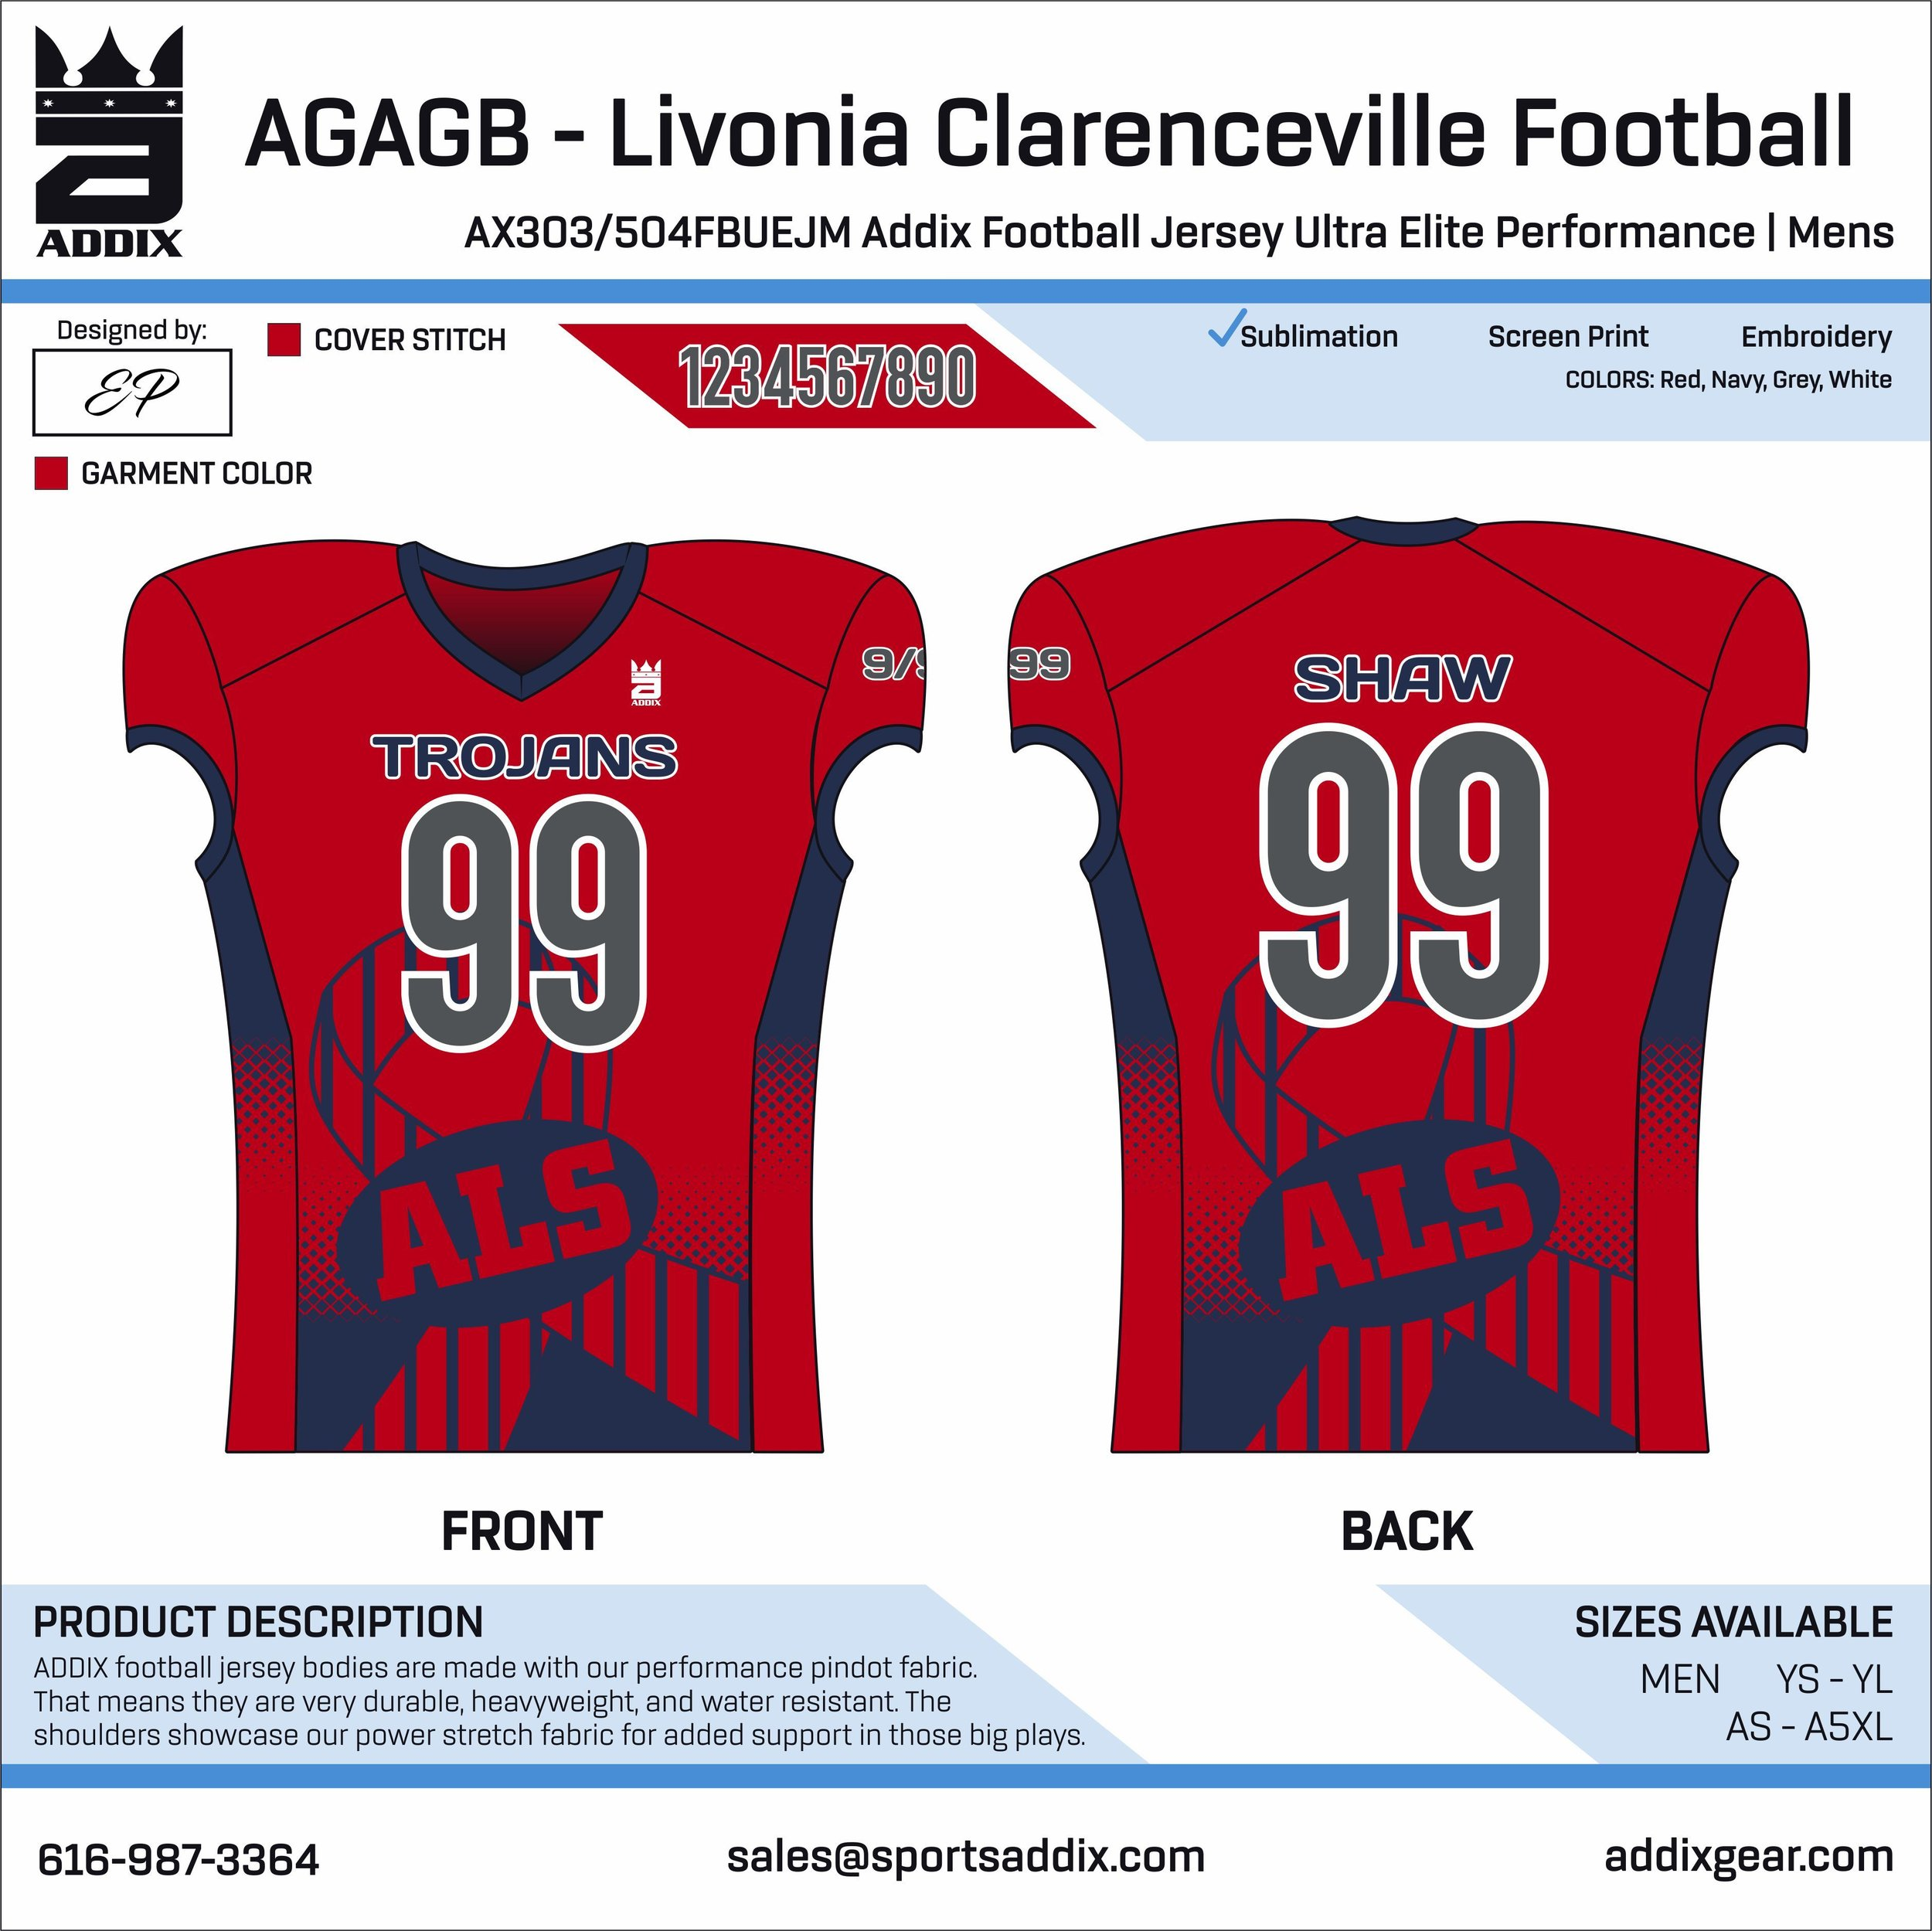 AGAGB - Livonia Clarenceville Football_2018_7-18-_EP_UE Football Jersey(2).jpg